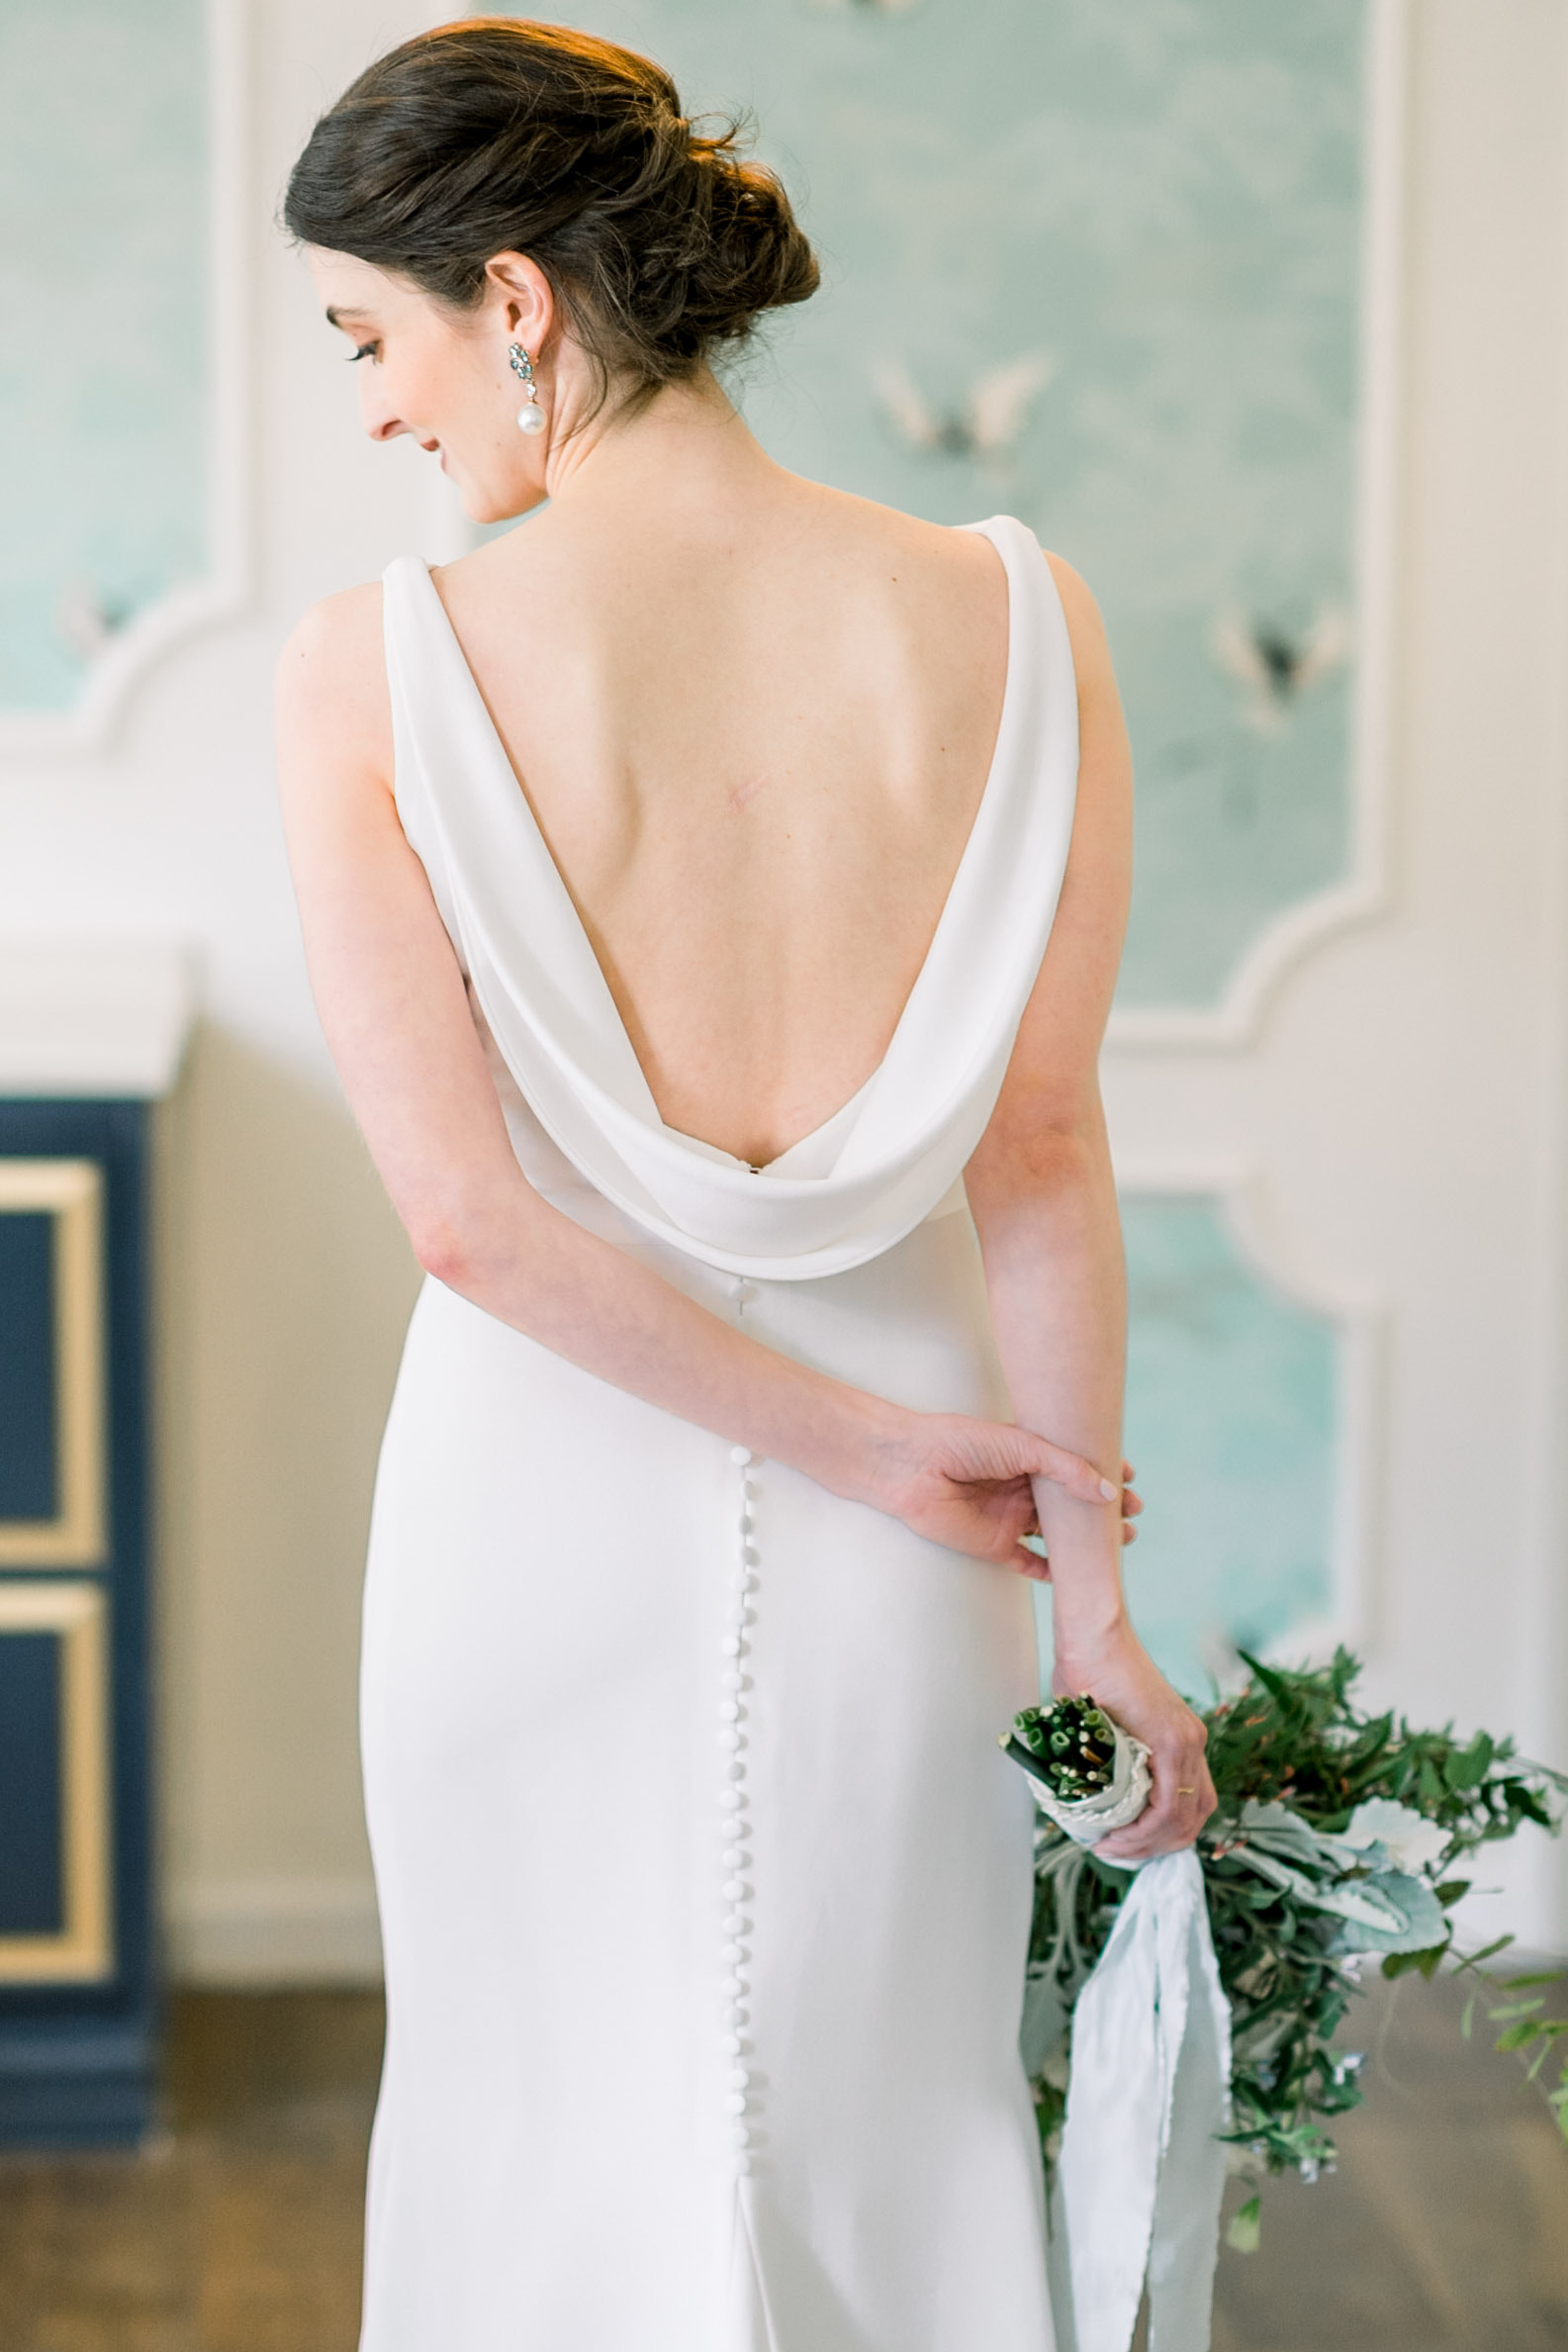 Brides posing for portrait in wedding dress for Pittsburgh wedding at Hotel Monaco planned by Exhale Events. Find more modern wedding ideas at exhale-events.com!